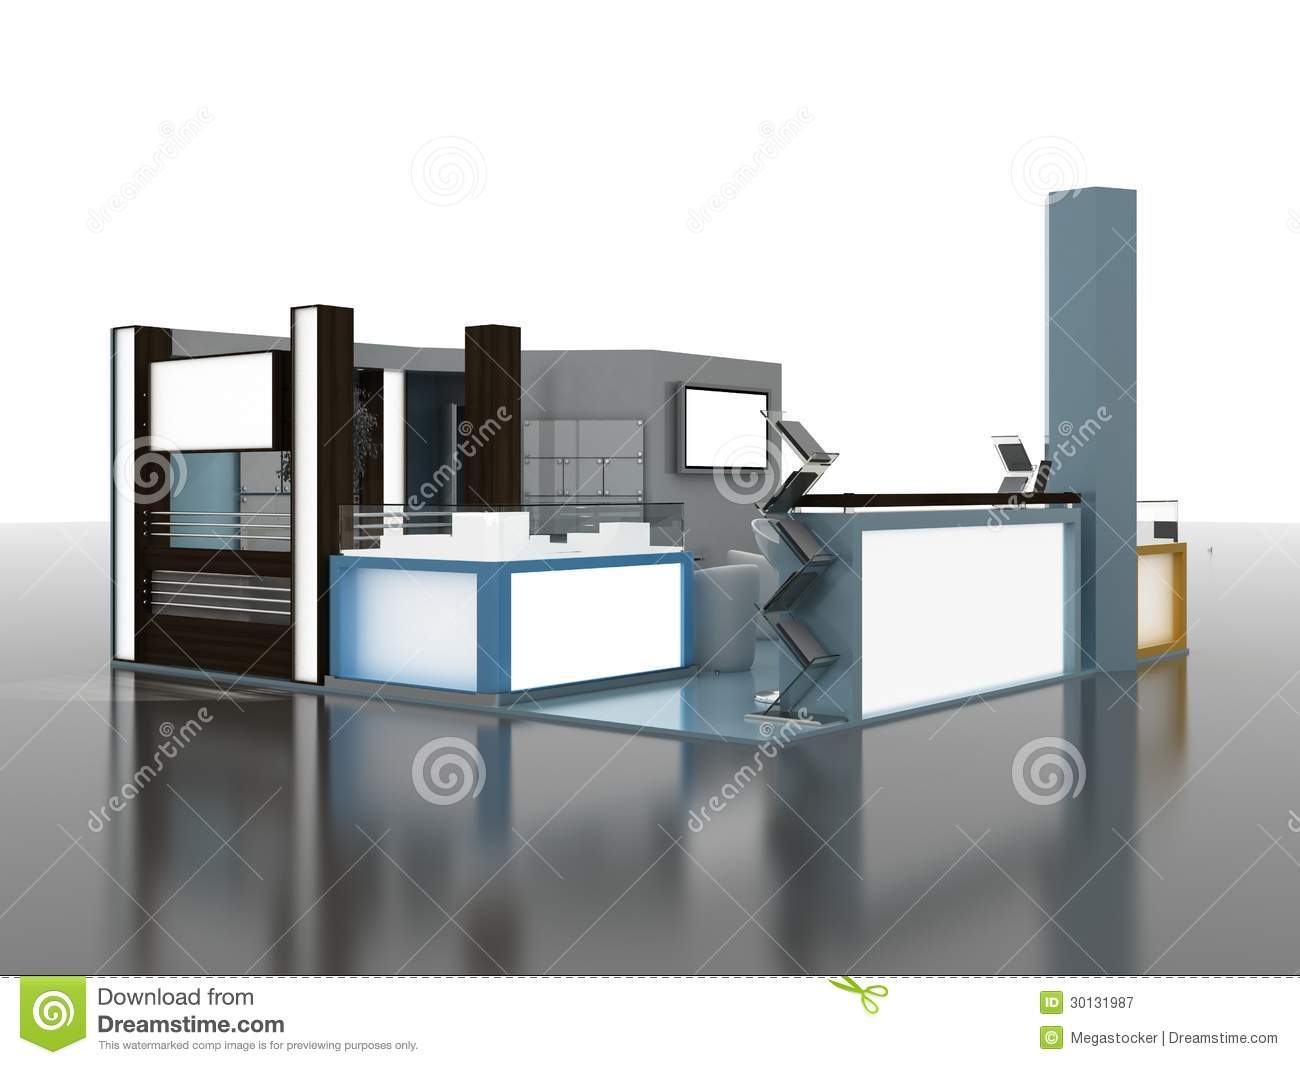 Exhibition Stand Interiors : Exhibition stand interior exterior sample stock illustration